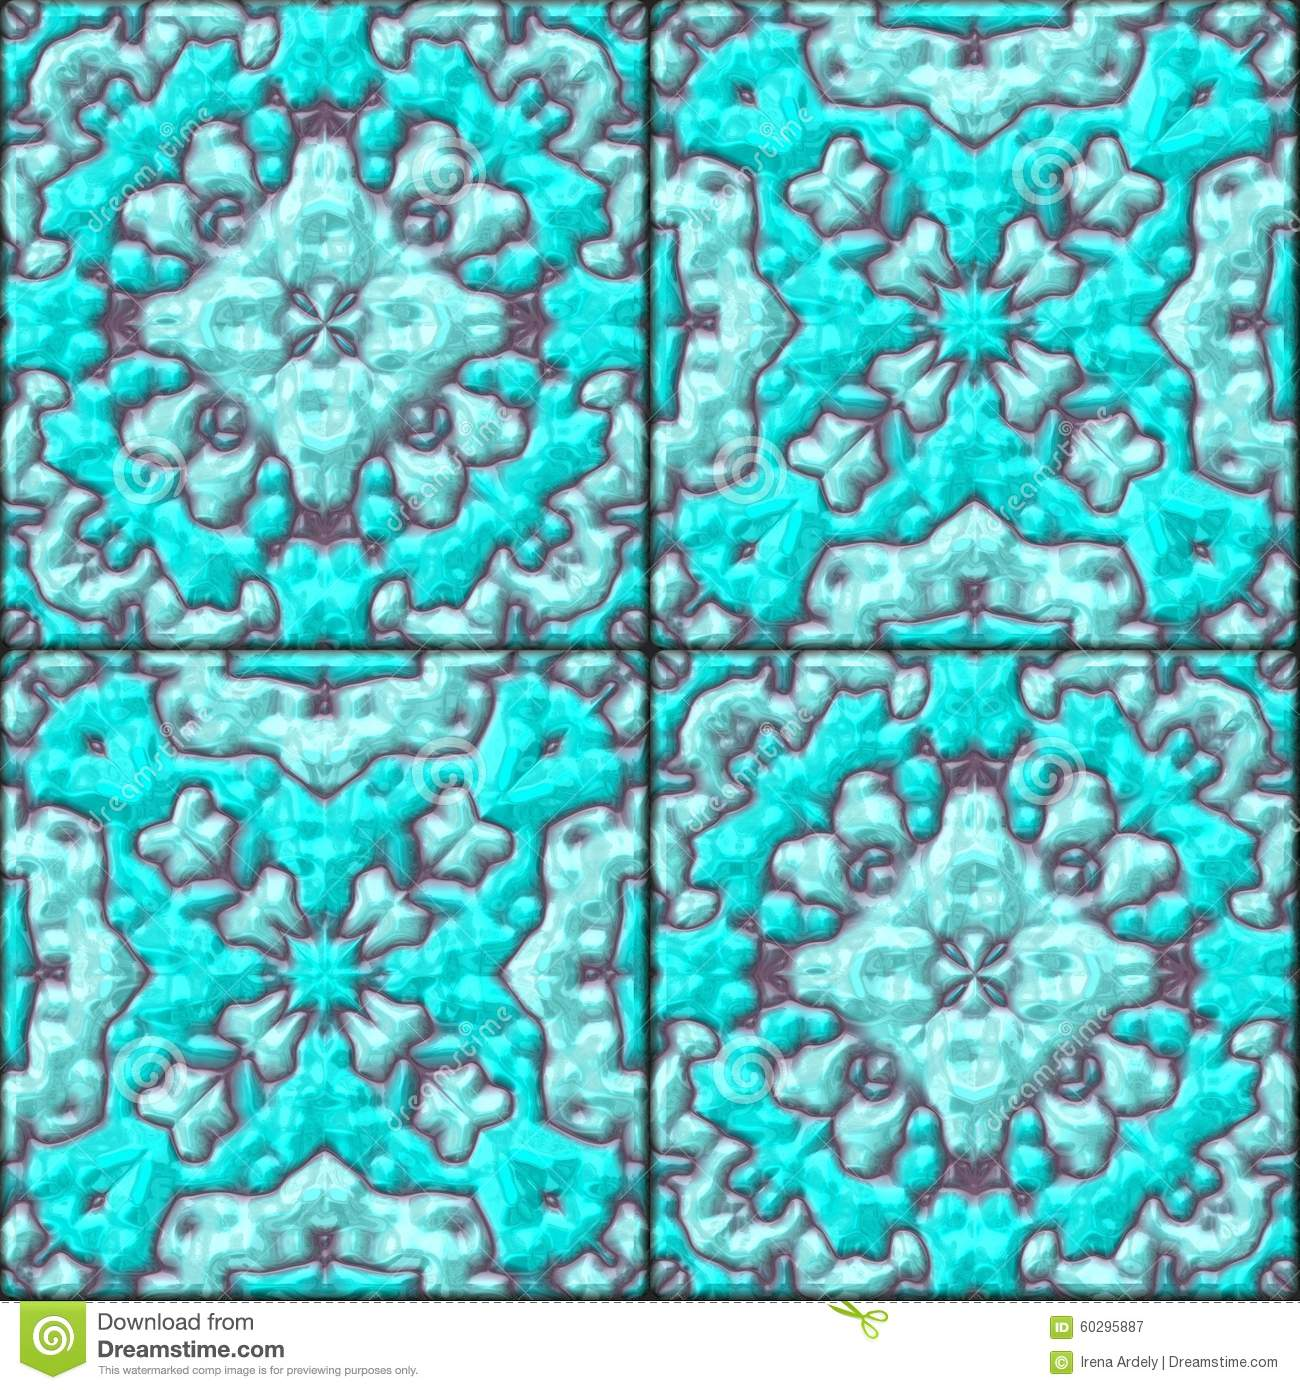 Turquoise Blue Floral Ceramic Tiles Seamless Pattern